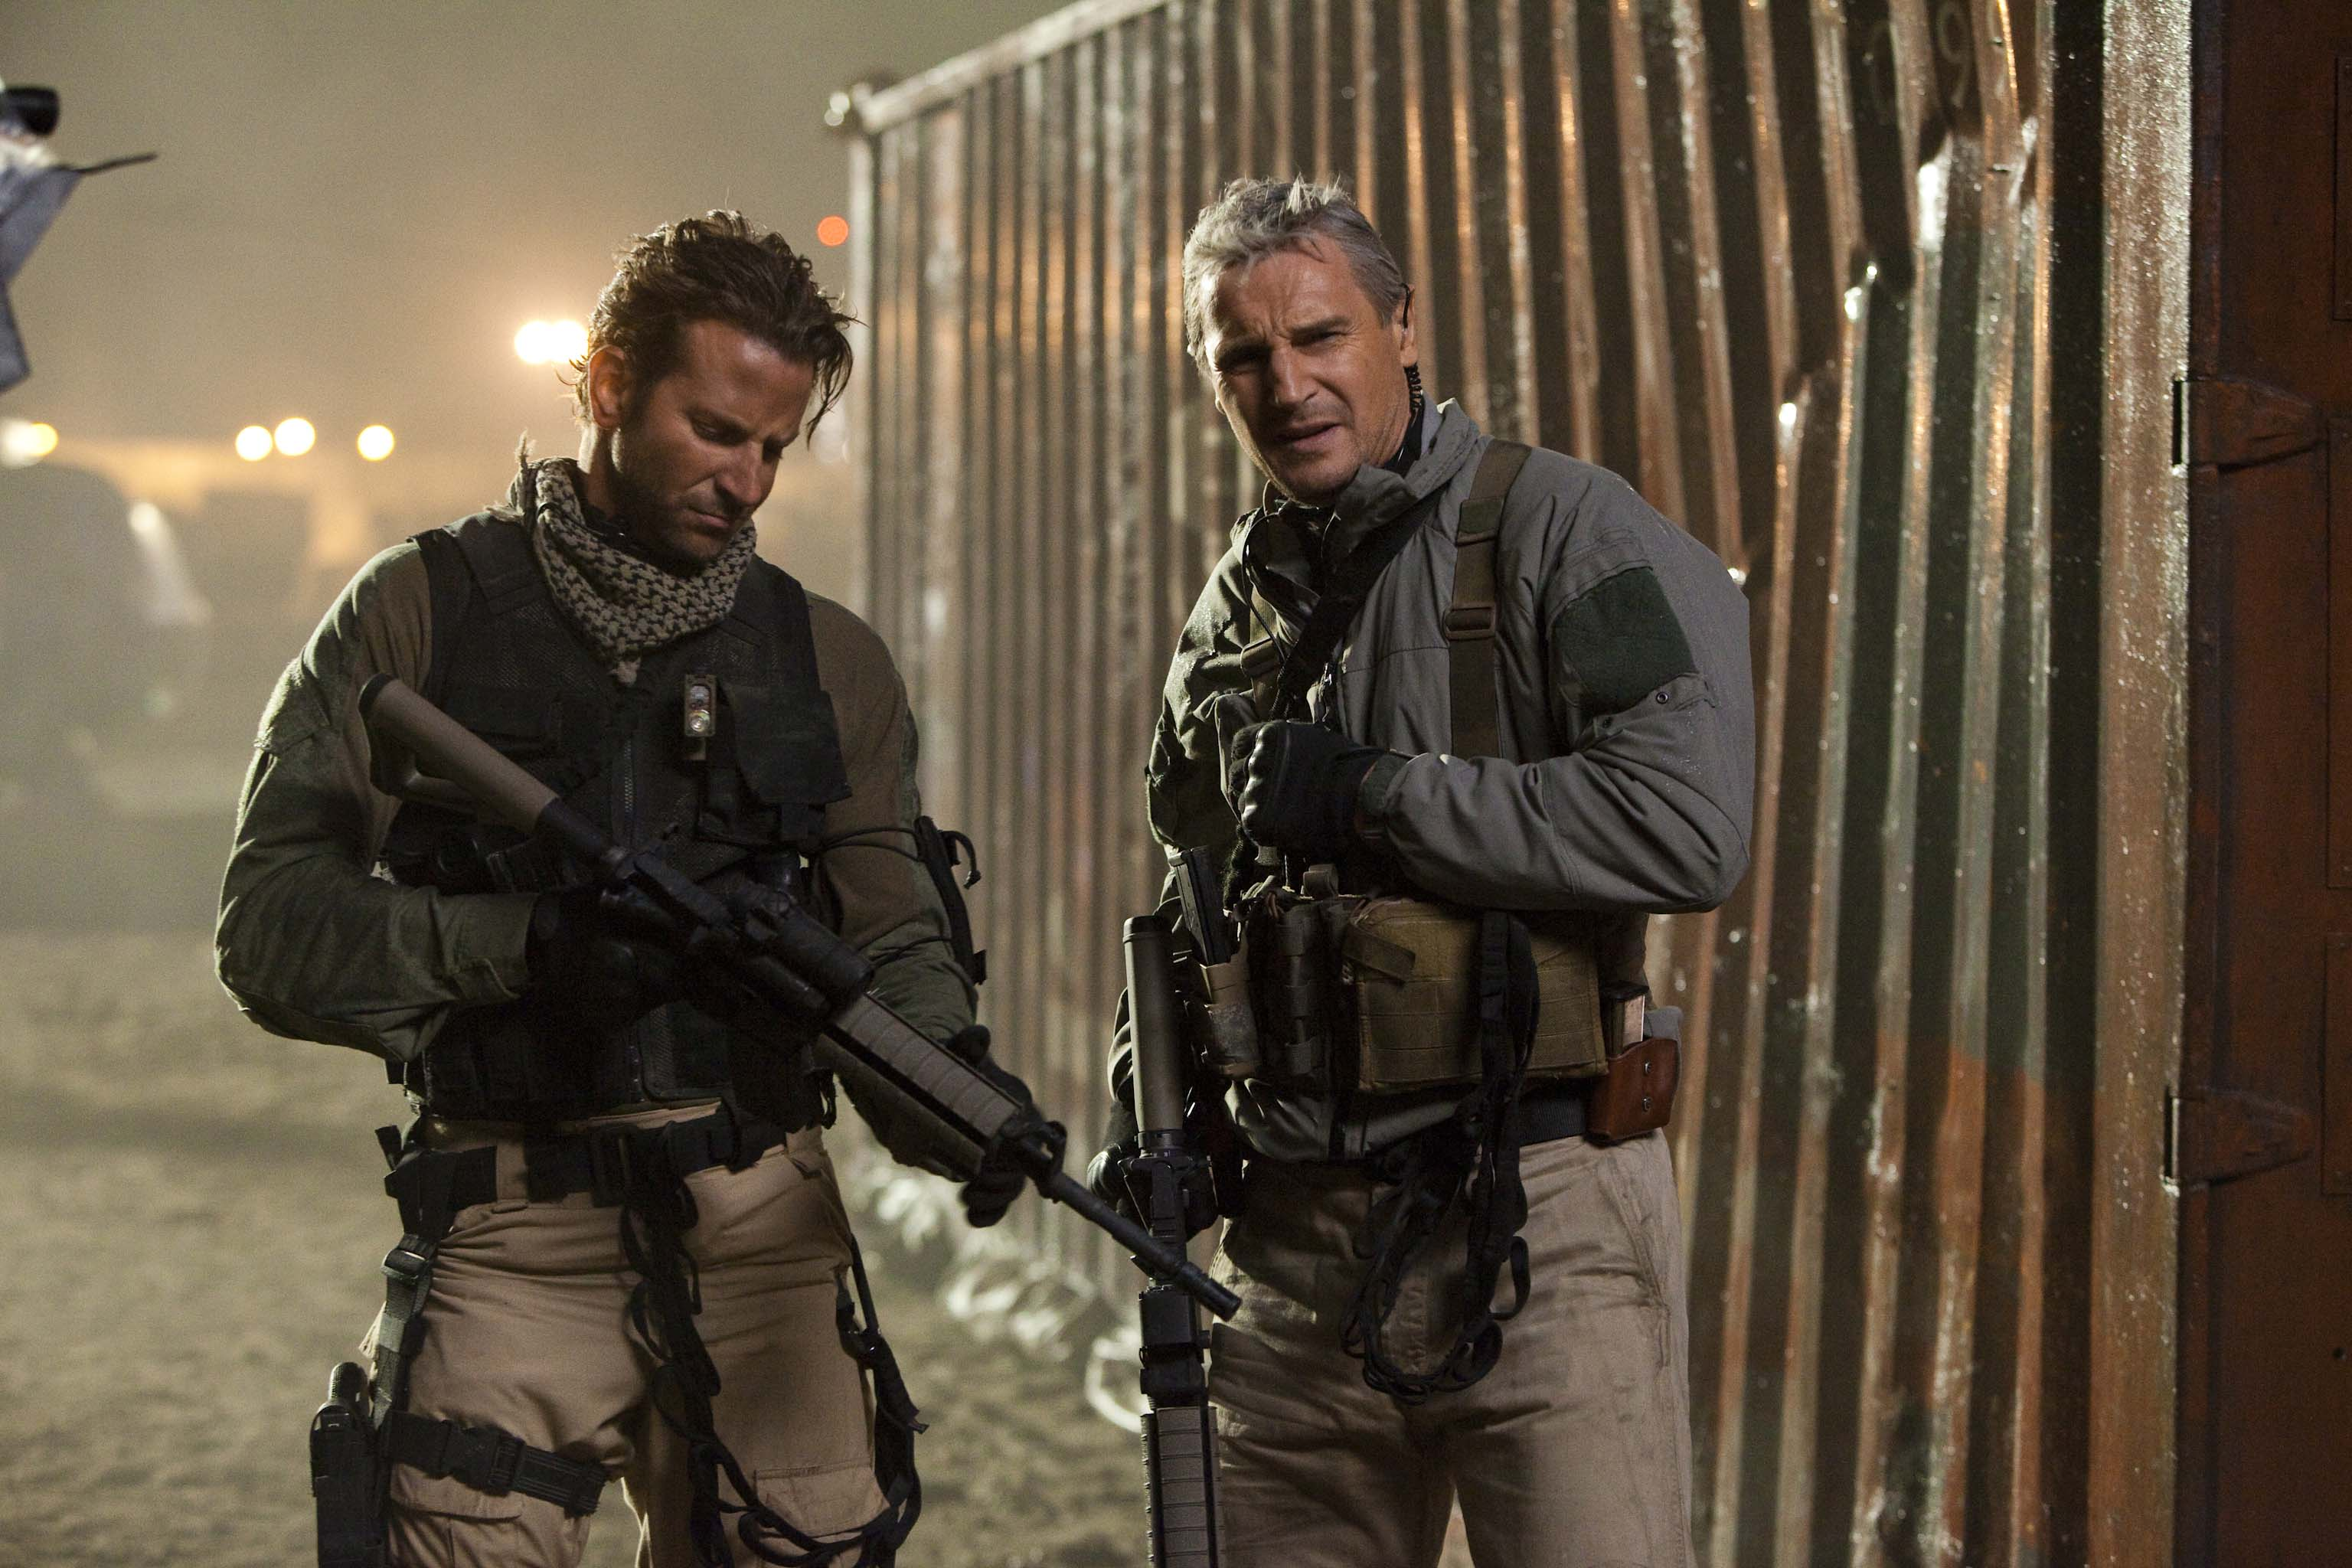 Guide Face Peck (Bradley Cooper) and Sentinel Hannibal Smith (Liam Neeson)